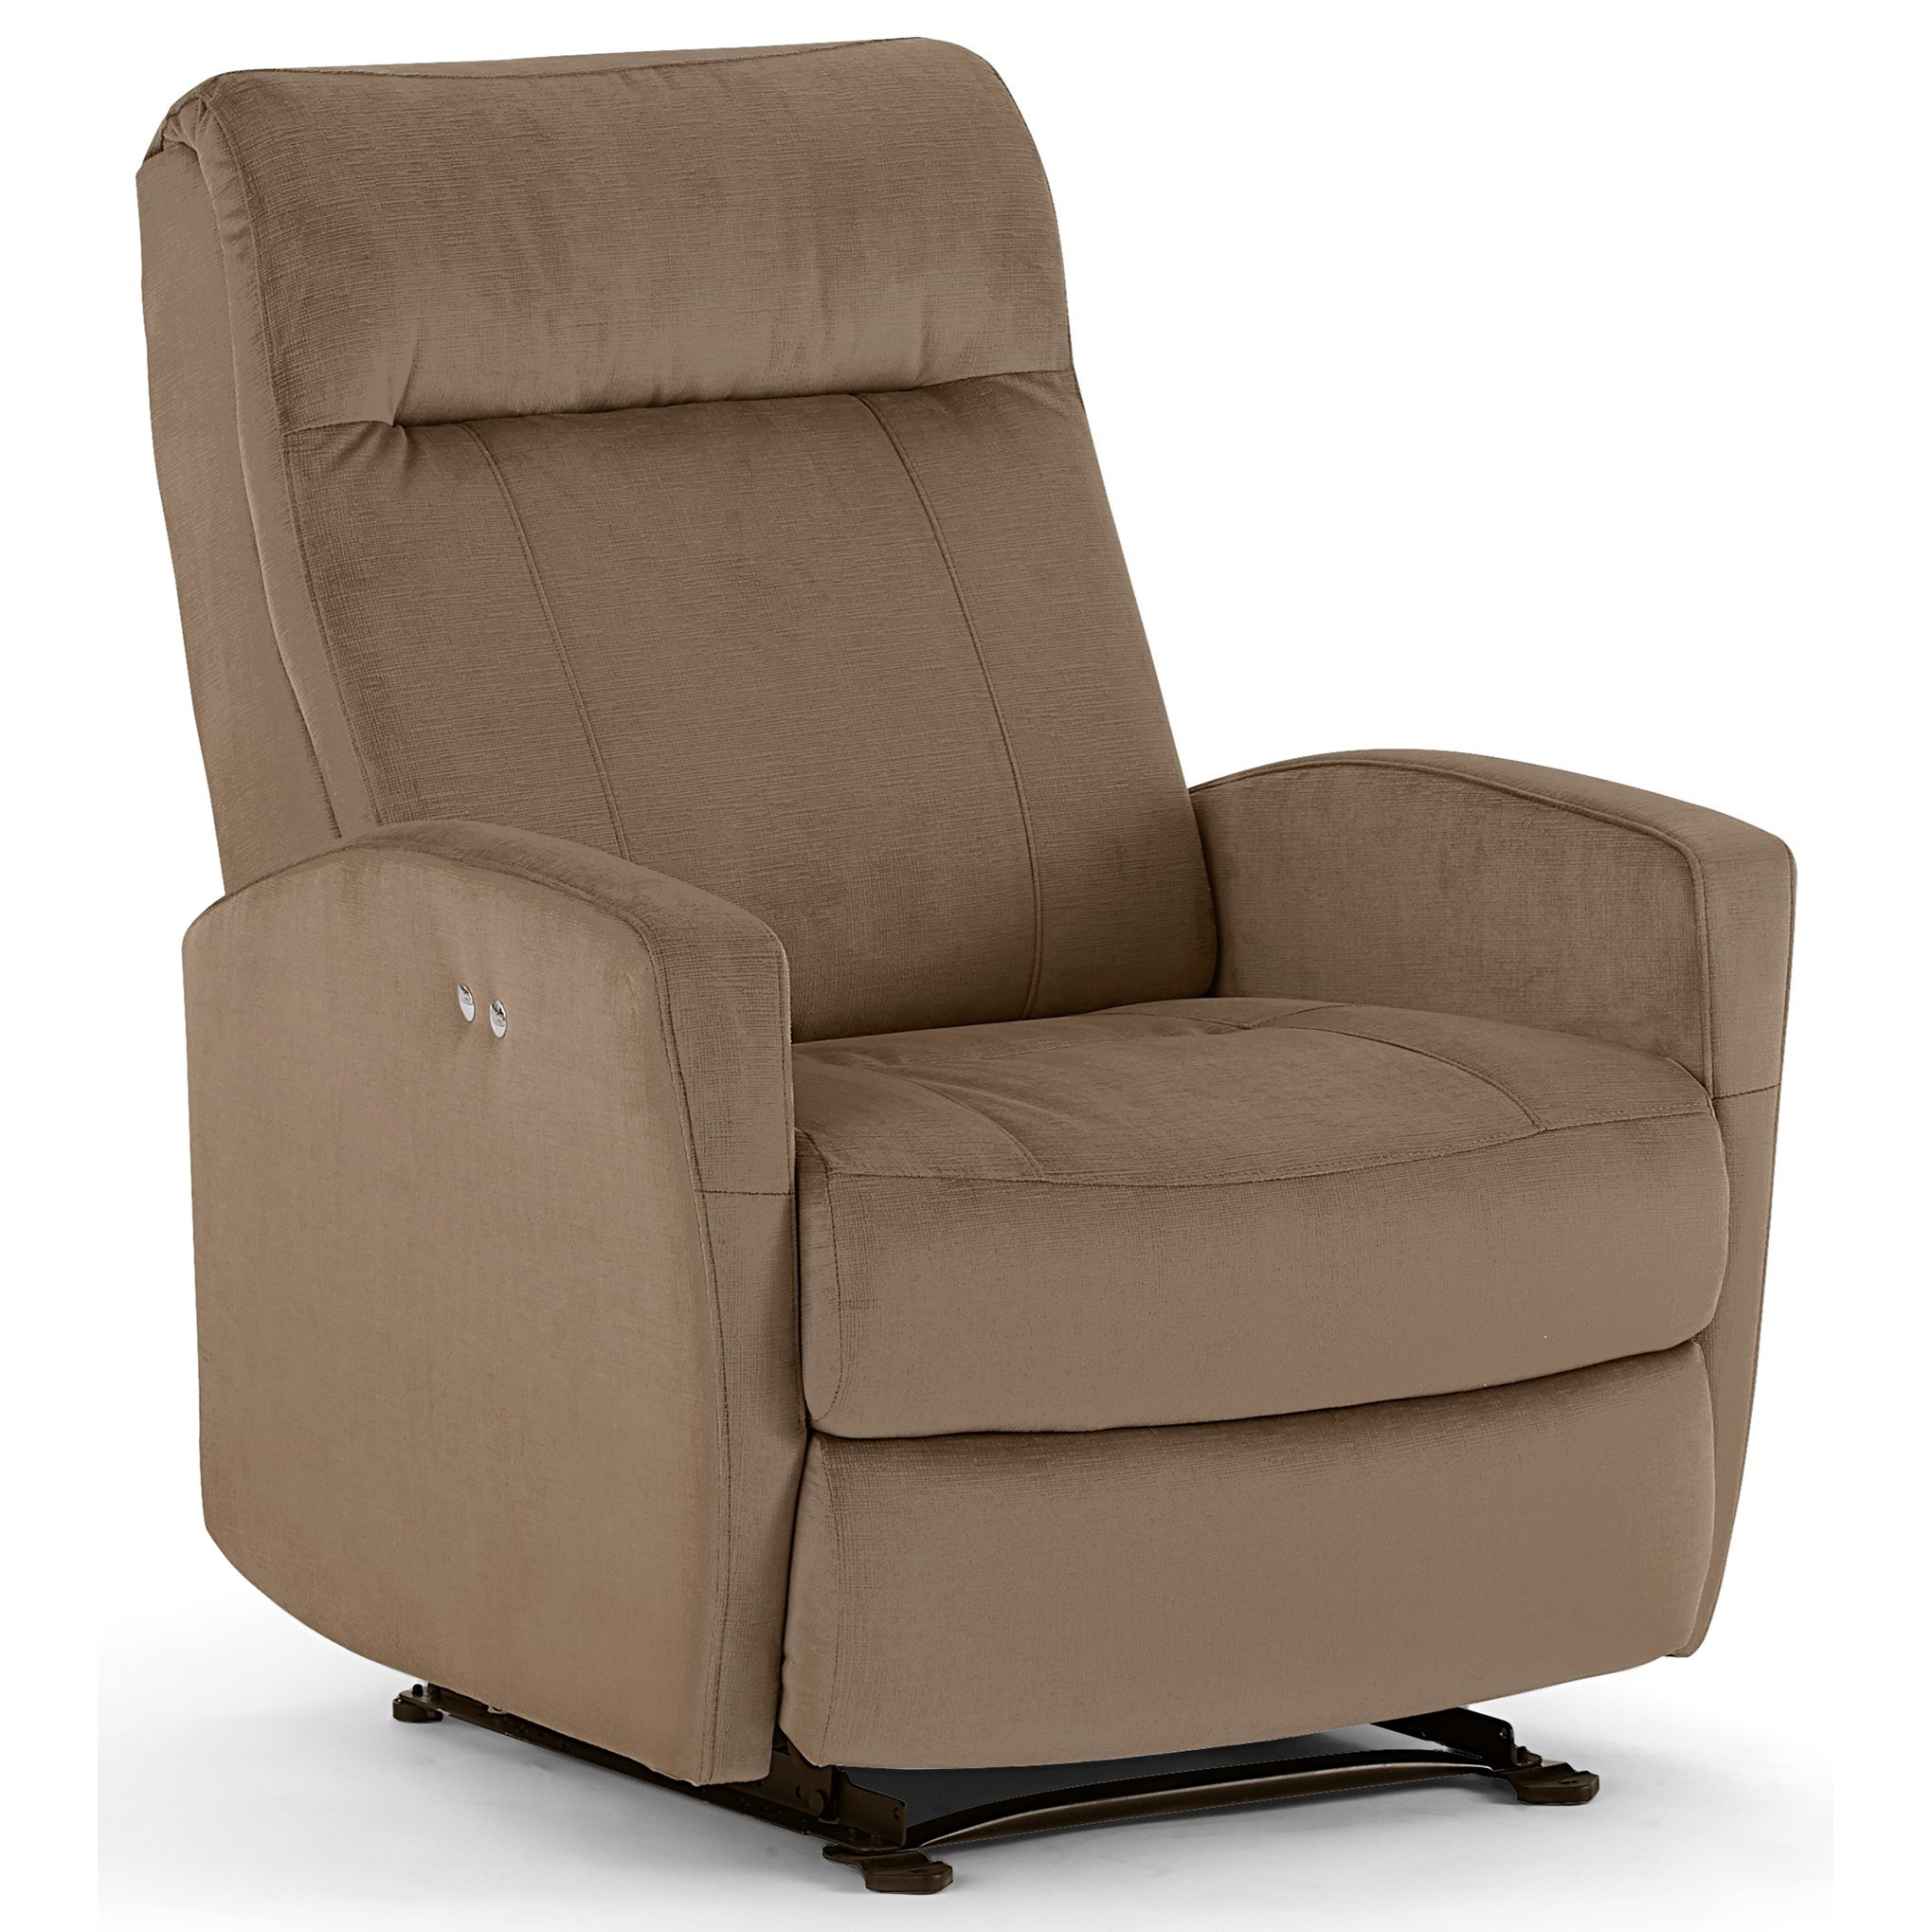 Costilla Swivel Glider Recliner by Best Home Furnishings at Furniture Superstore - Rochester, MN